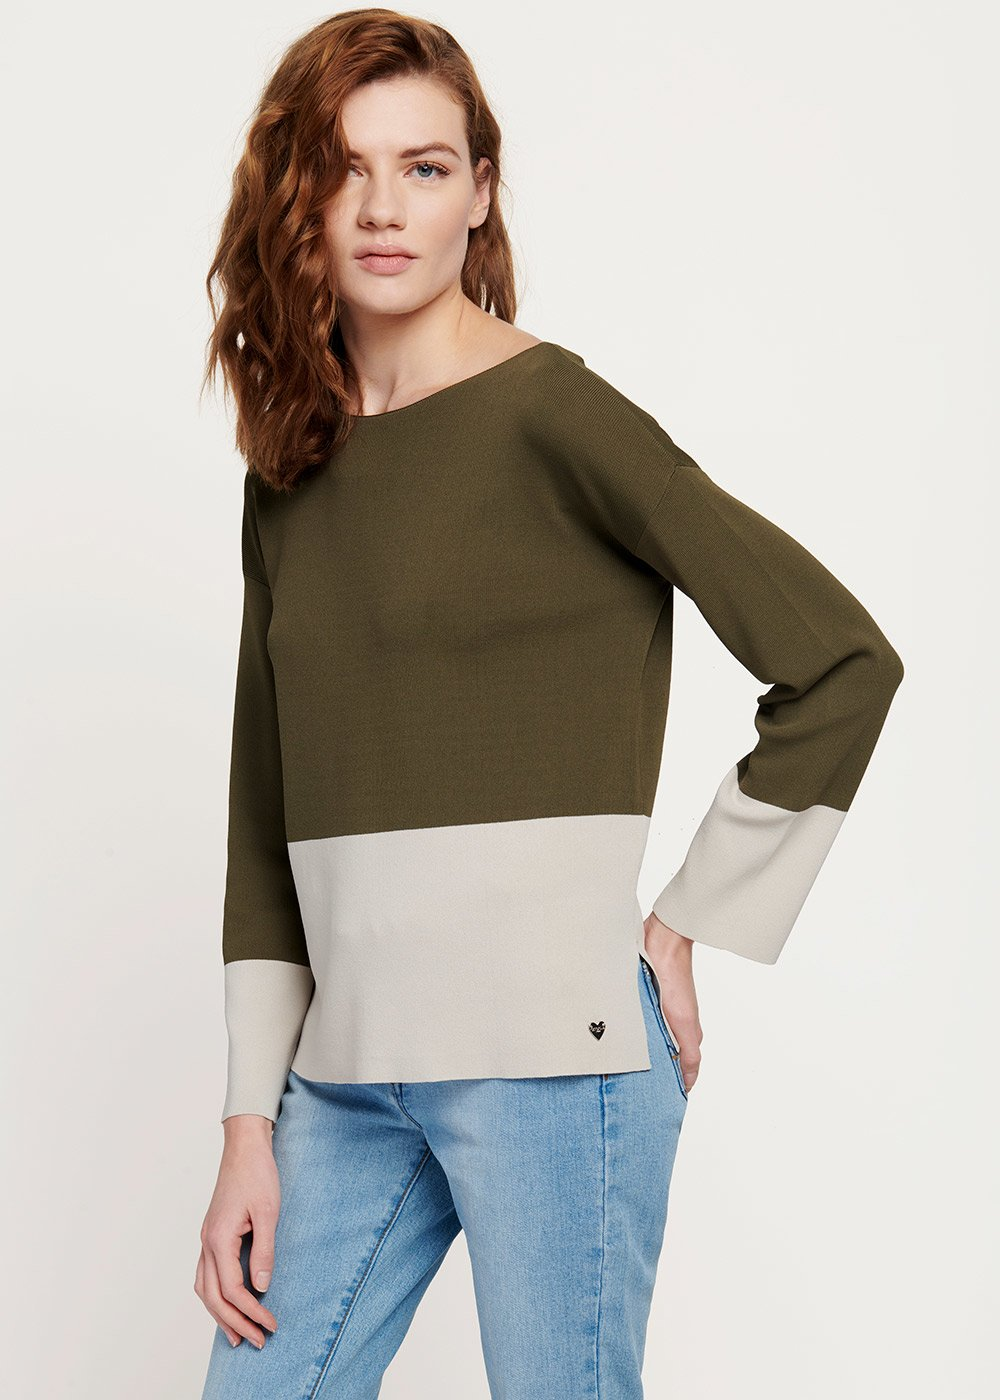 Marilu double-colour cotton yarn sweater - Timo / L.beige	 - Woman